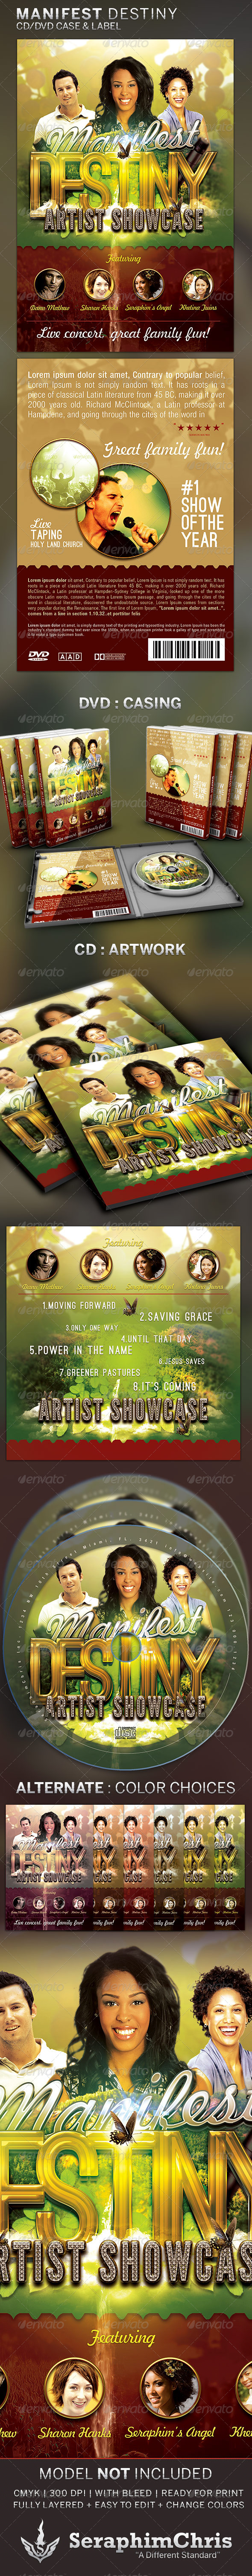 GraphicRiver Manifest Destiny CD DVD Template 4797579